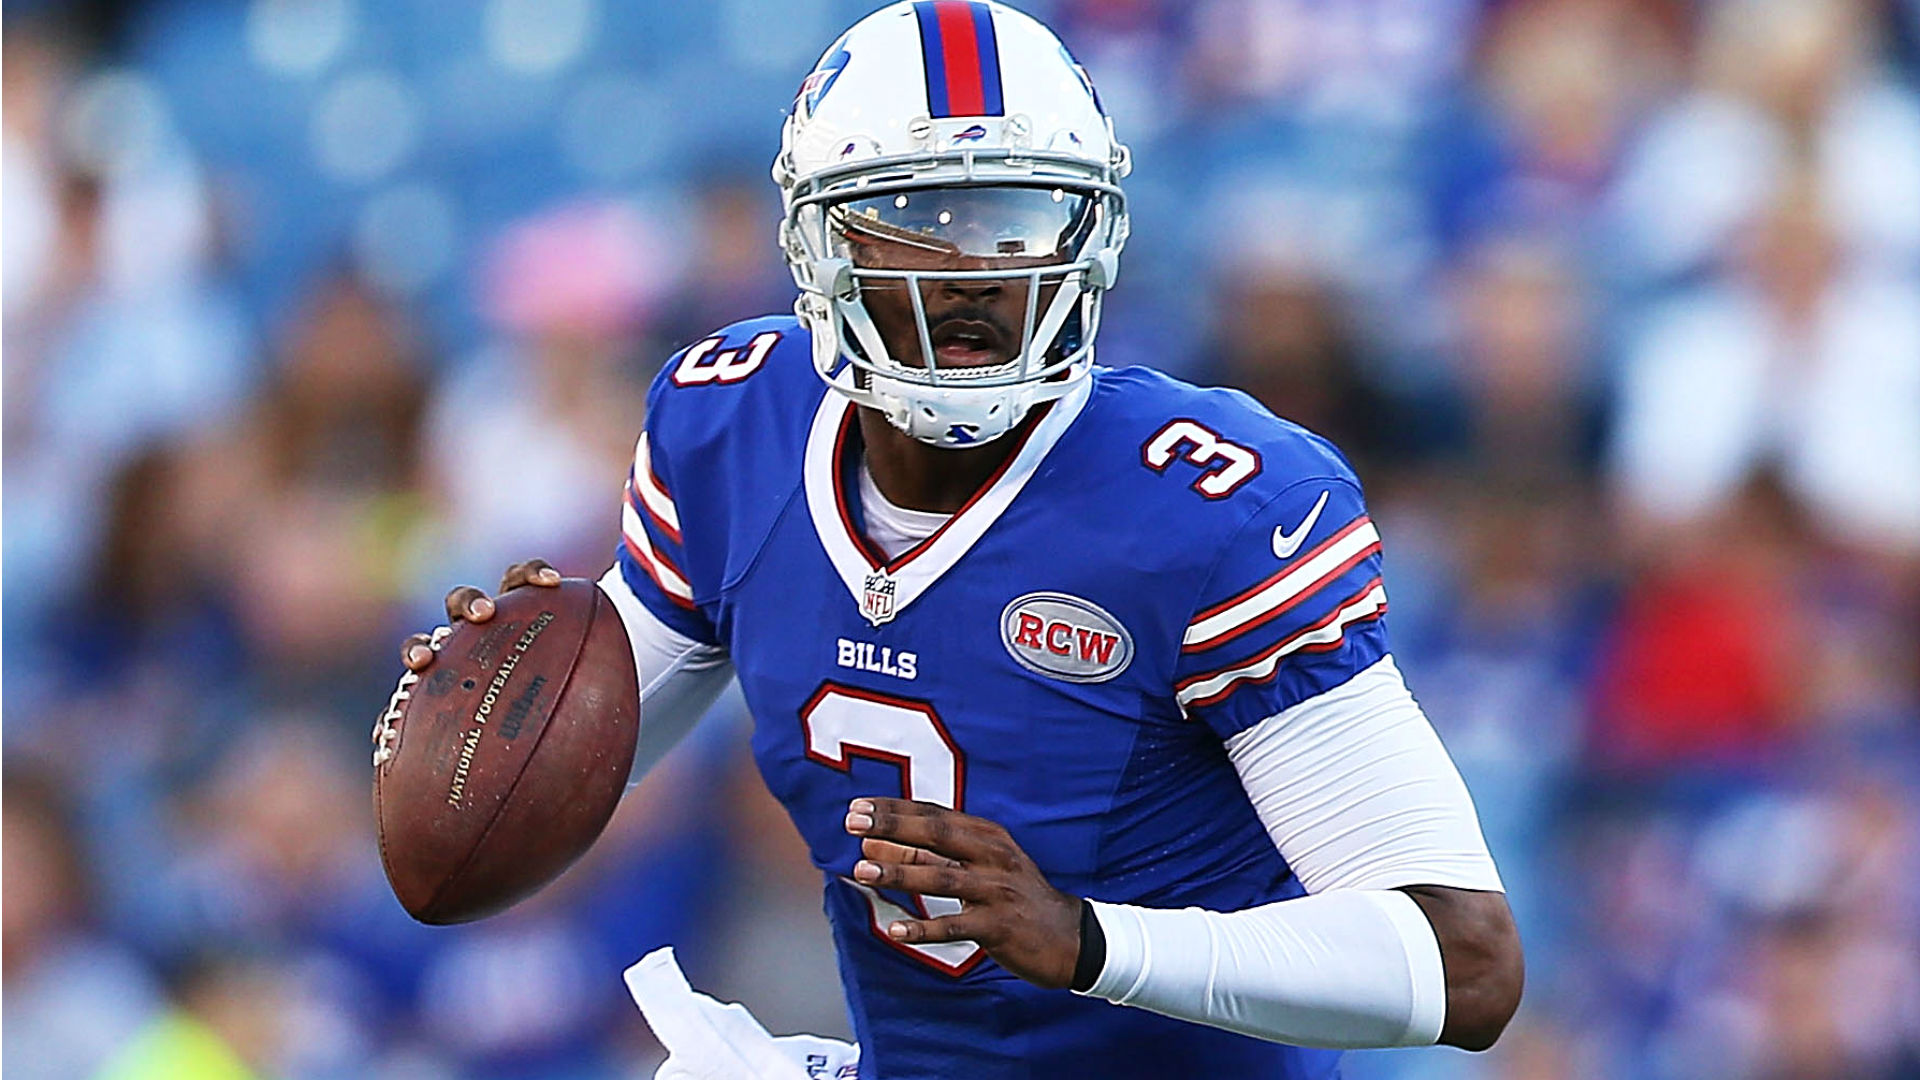 EJ Manuel's place on Bills roster in jeopardy, report says | NFL | Sporting News